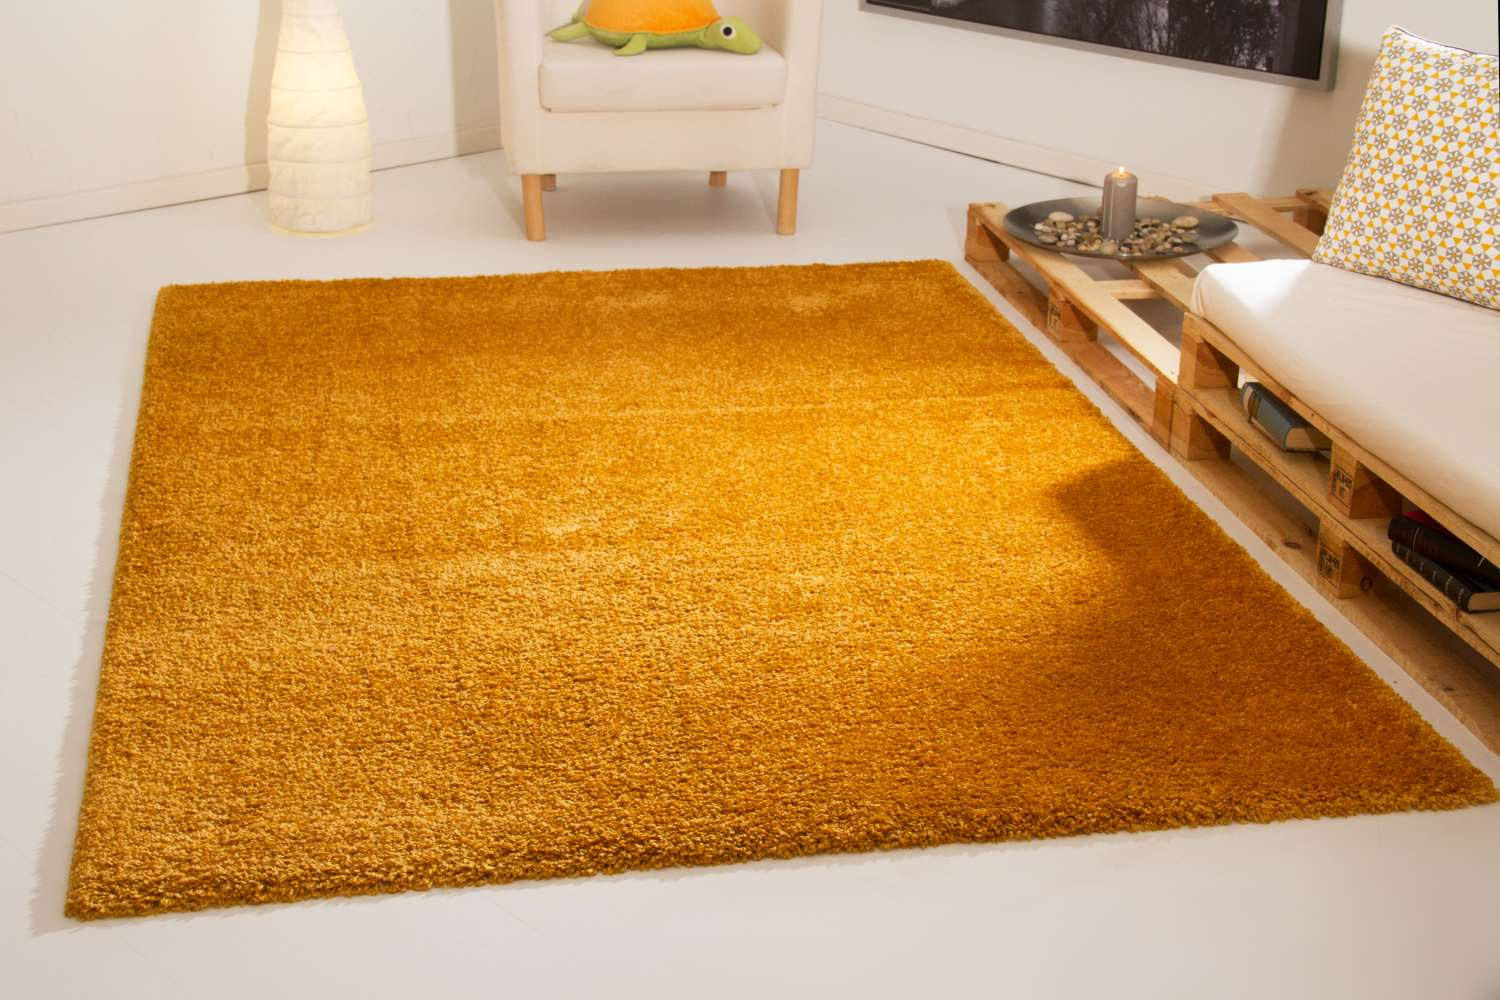 Kinderteppich grün gelb  Hochflor Teppich Tom Tailor - Soft | global-carpet